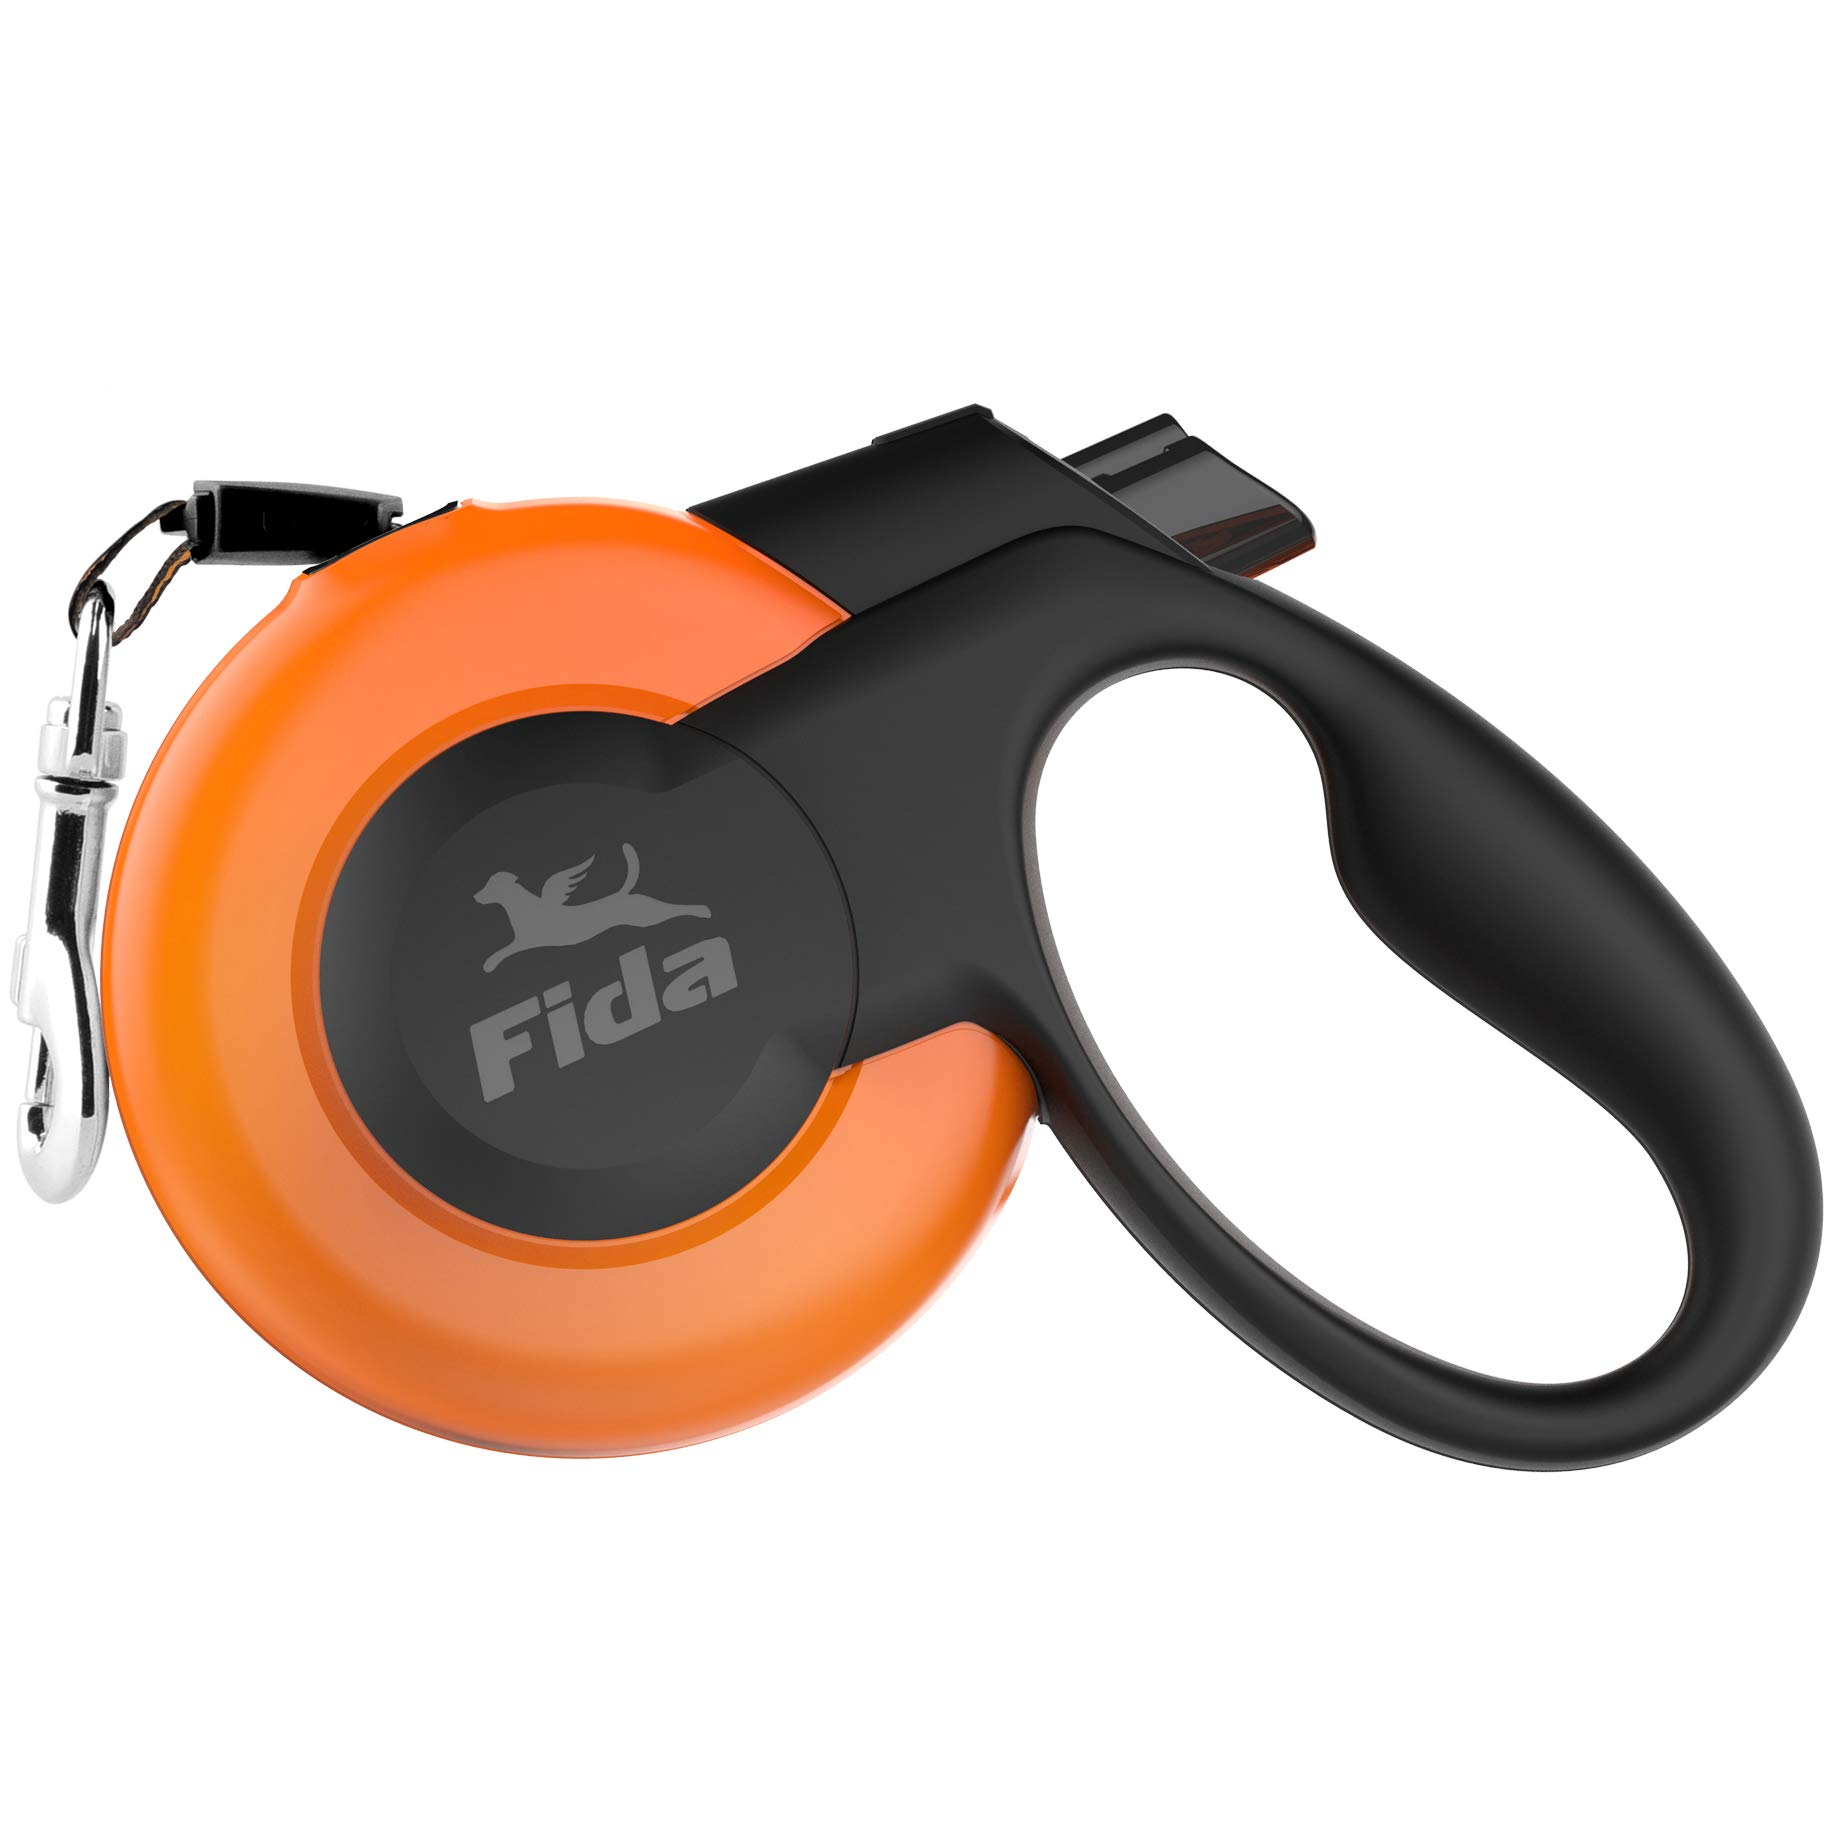 Fida Retractable Dog Leash, Heavy Duty Retracting Pet Leash with 16 ft Strong Nylon Tape/Ribbon for Large Breed up to 110 lbs, Tangle Free, One-Hand Brake, Orange (Mars Series) by Fida